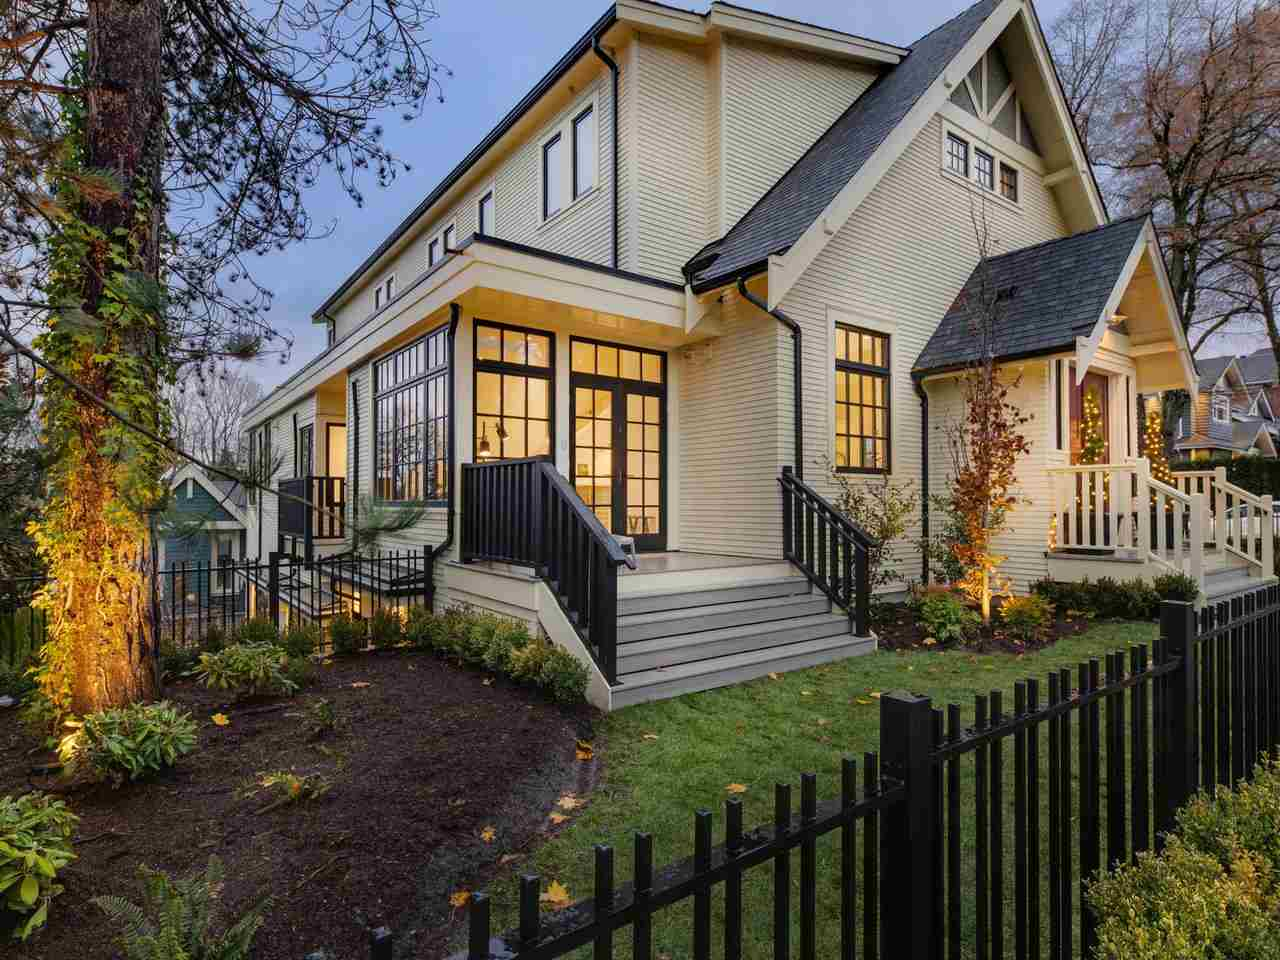 809 W 23 AVENUE - Cambie Townhouse for sale, 3 Bedrooms (R2518236) - #36